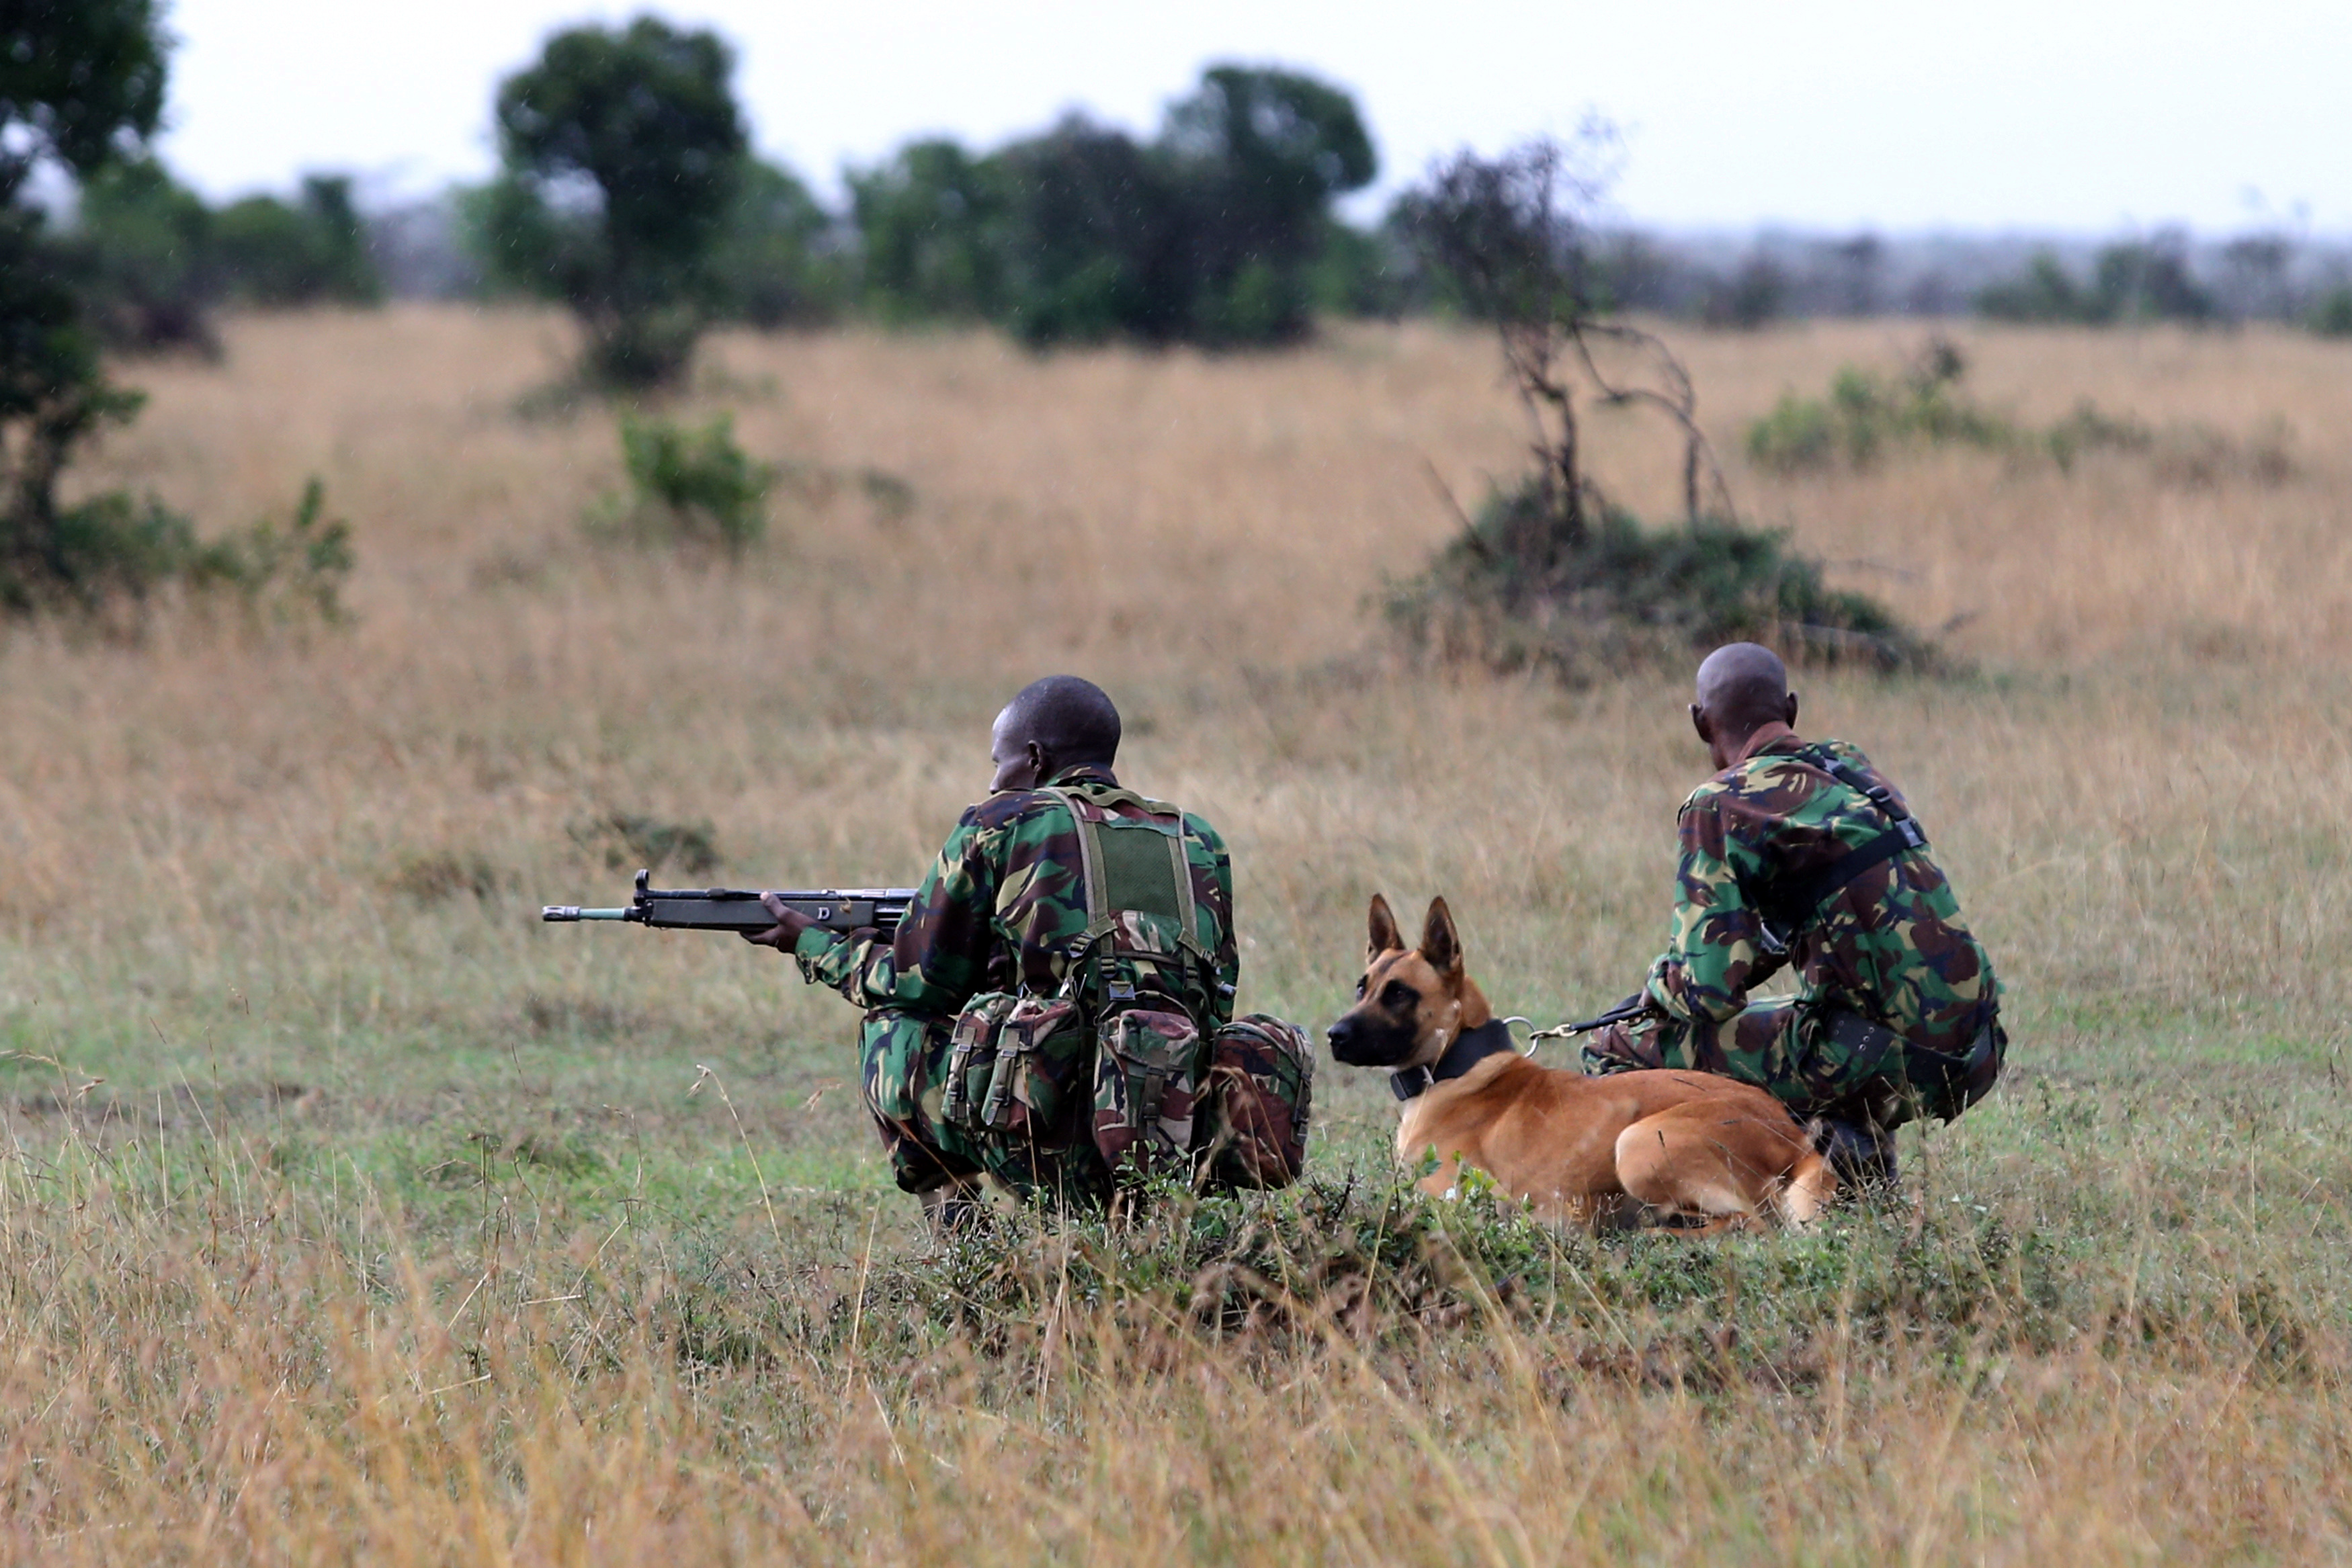 A special unit of wildlife rangers demonstrate an anti-poaching exercise ahead of the Giants Club Summit of African leaders and others on tackling poaching of elephants and rhinos, Ol Pejeta conservancy near the town of Nanyuki, Laikipia County, Keny...